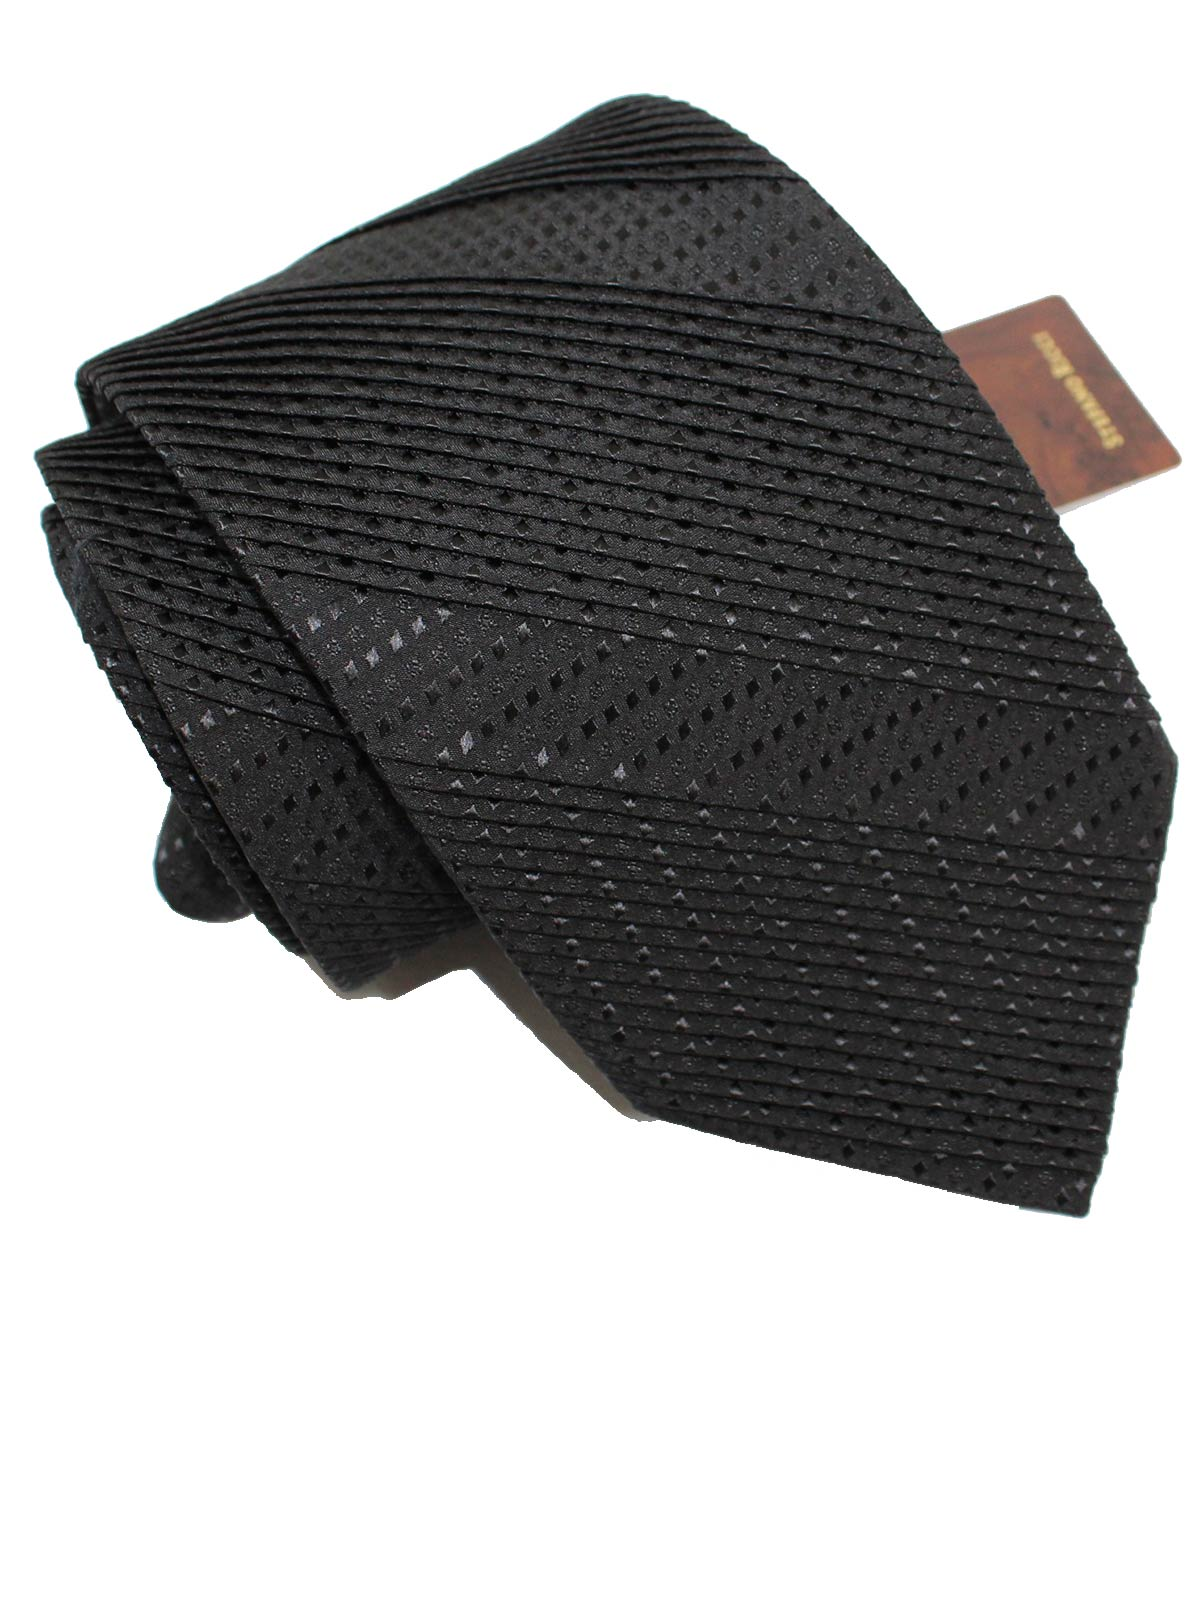 Stefano Ricci Silk Tie Solid Black Design